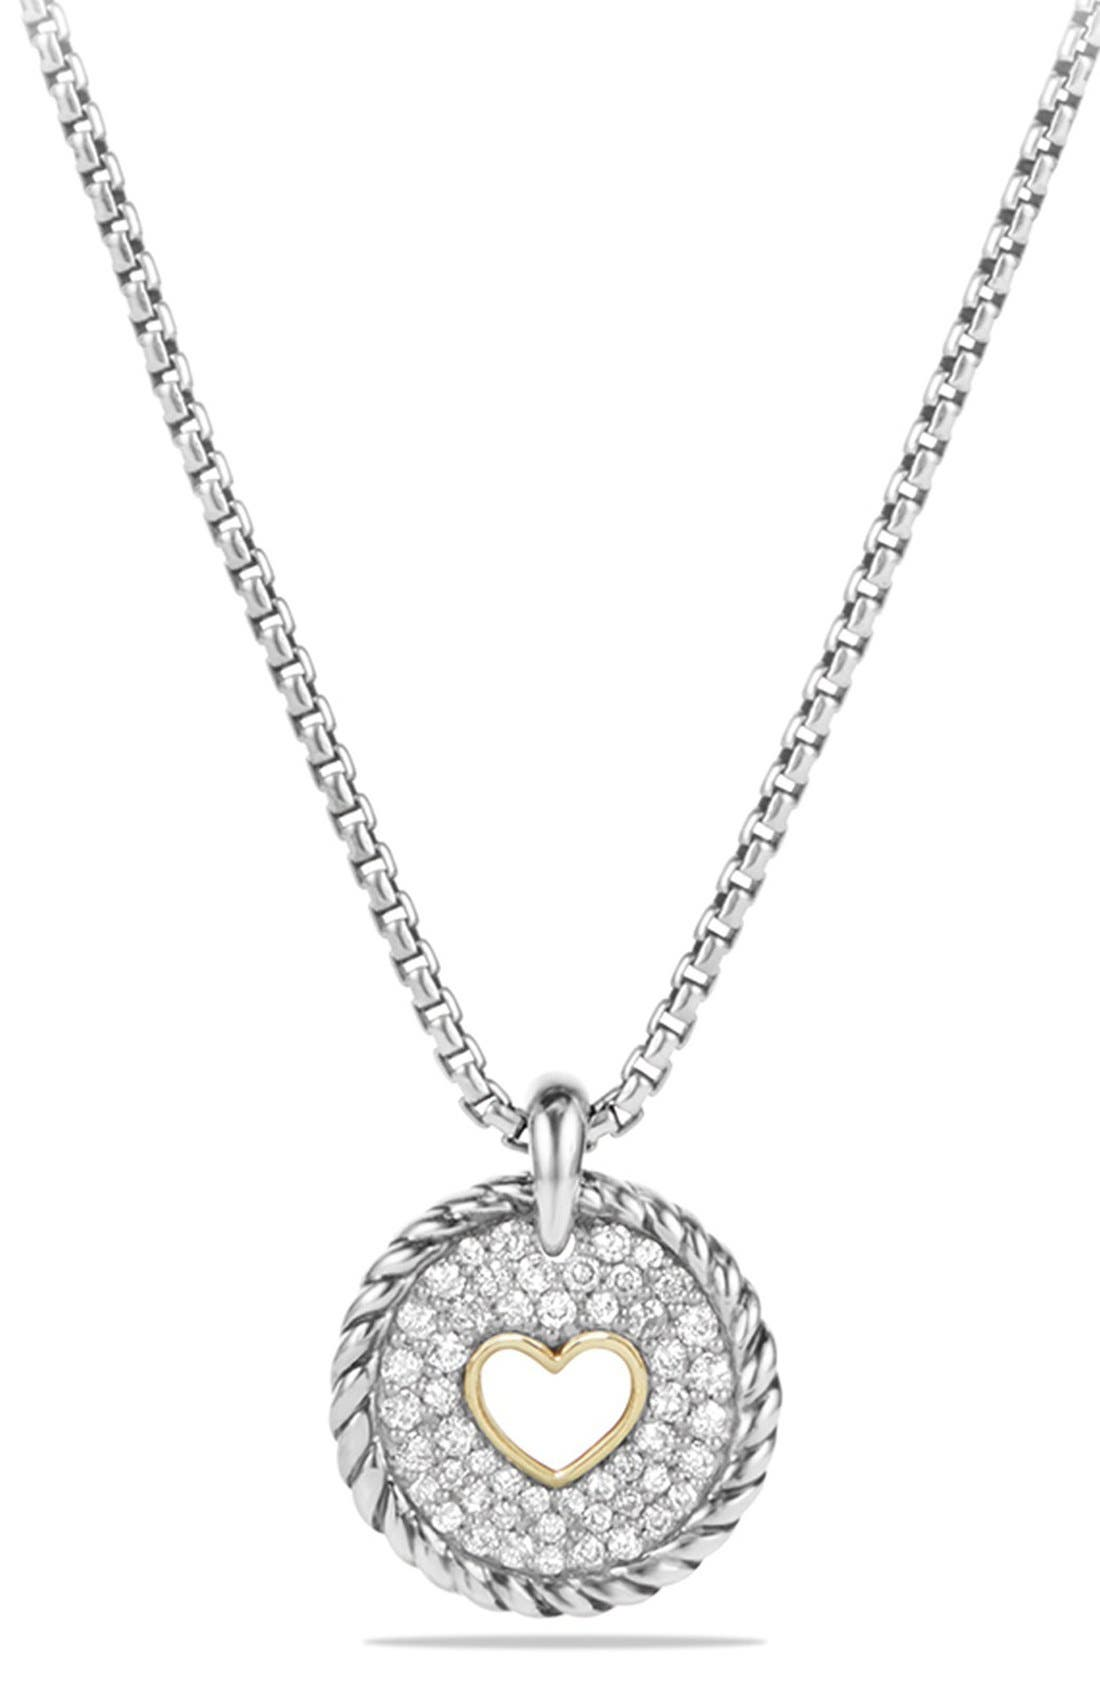 Main Image - David Yurman 'Cable Collectibles' Heart Charm with Diamonds